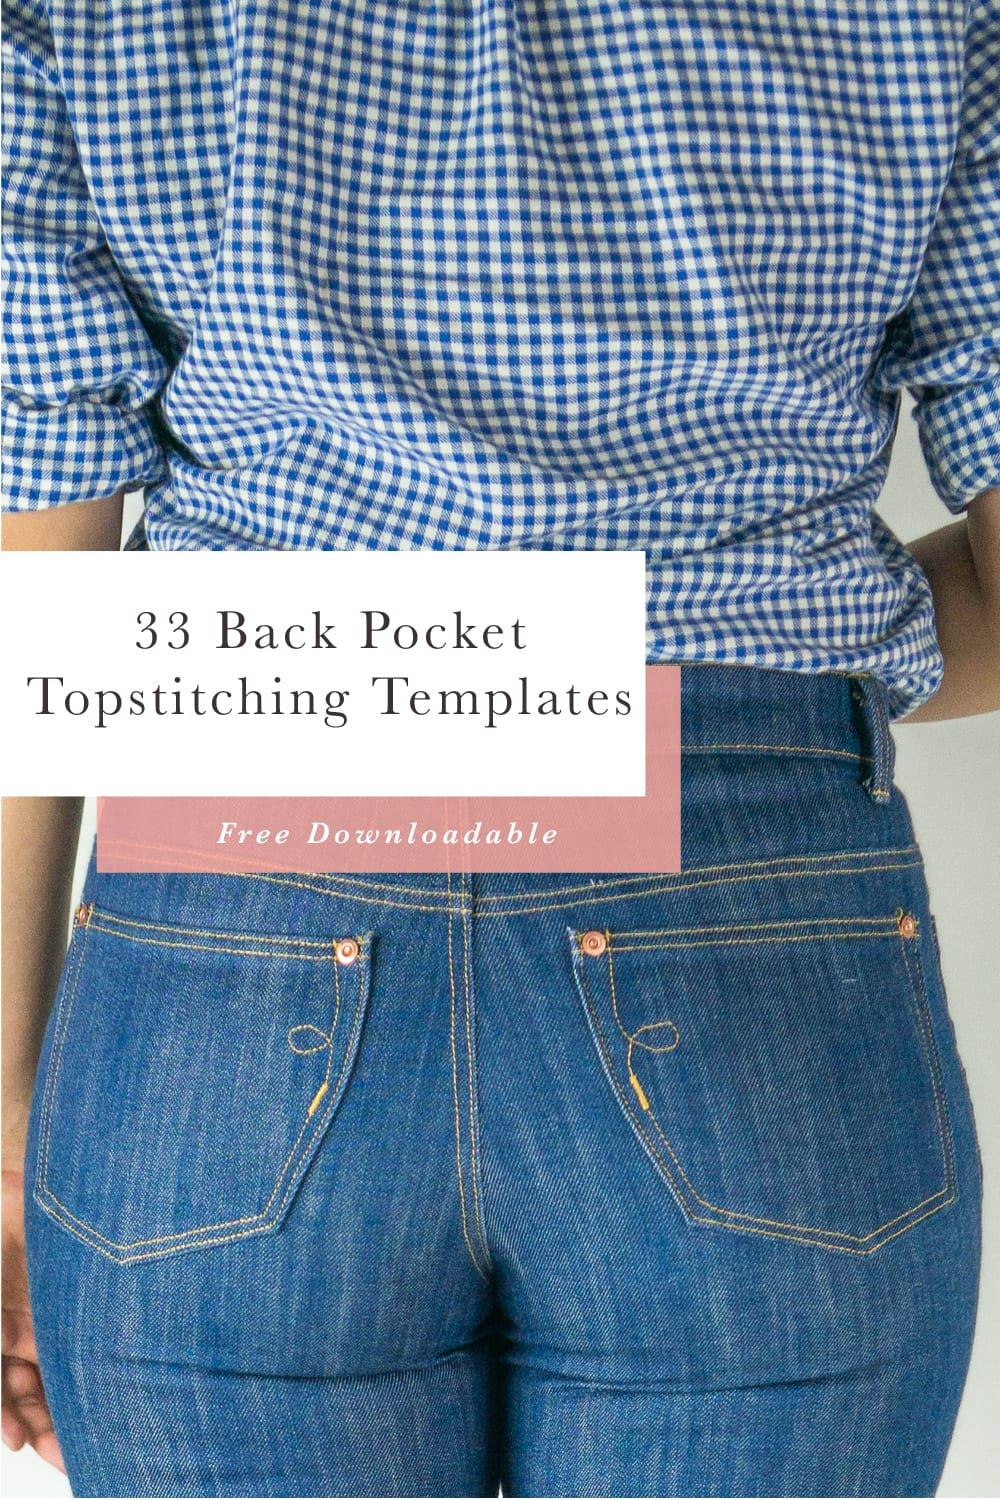 Free Downloadable! 33 Back Pocket Designs & Templates // Closet Case Patterns